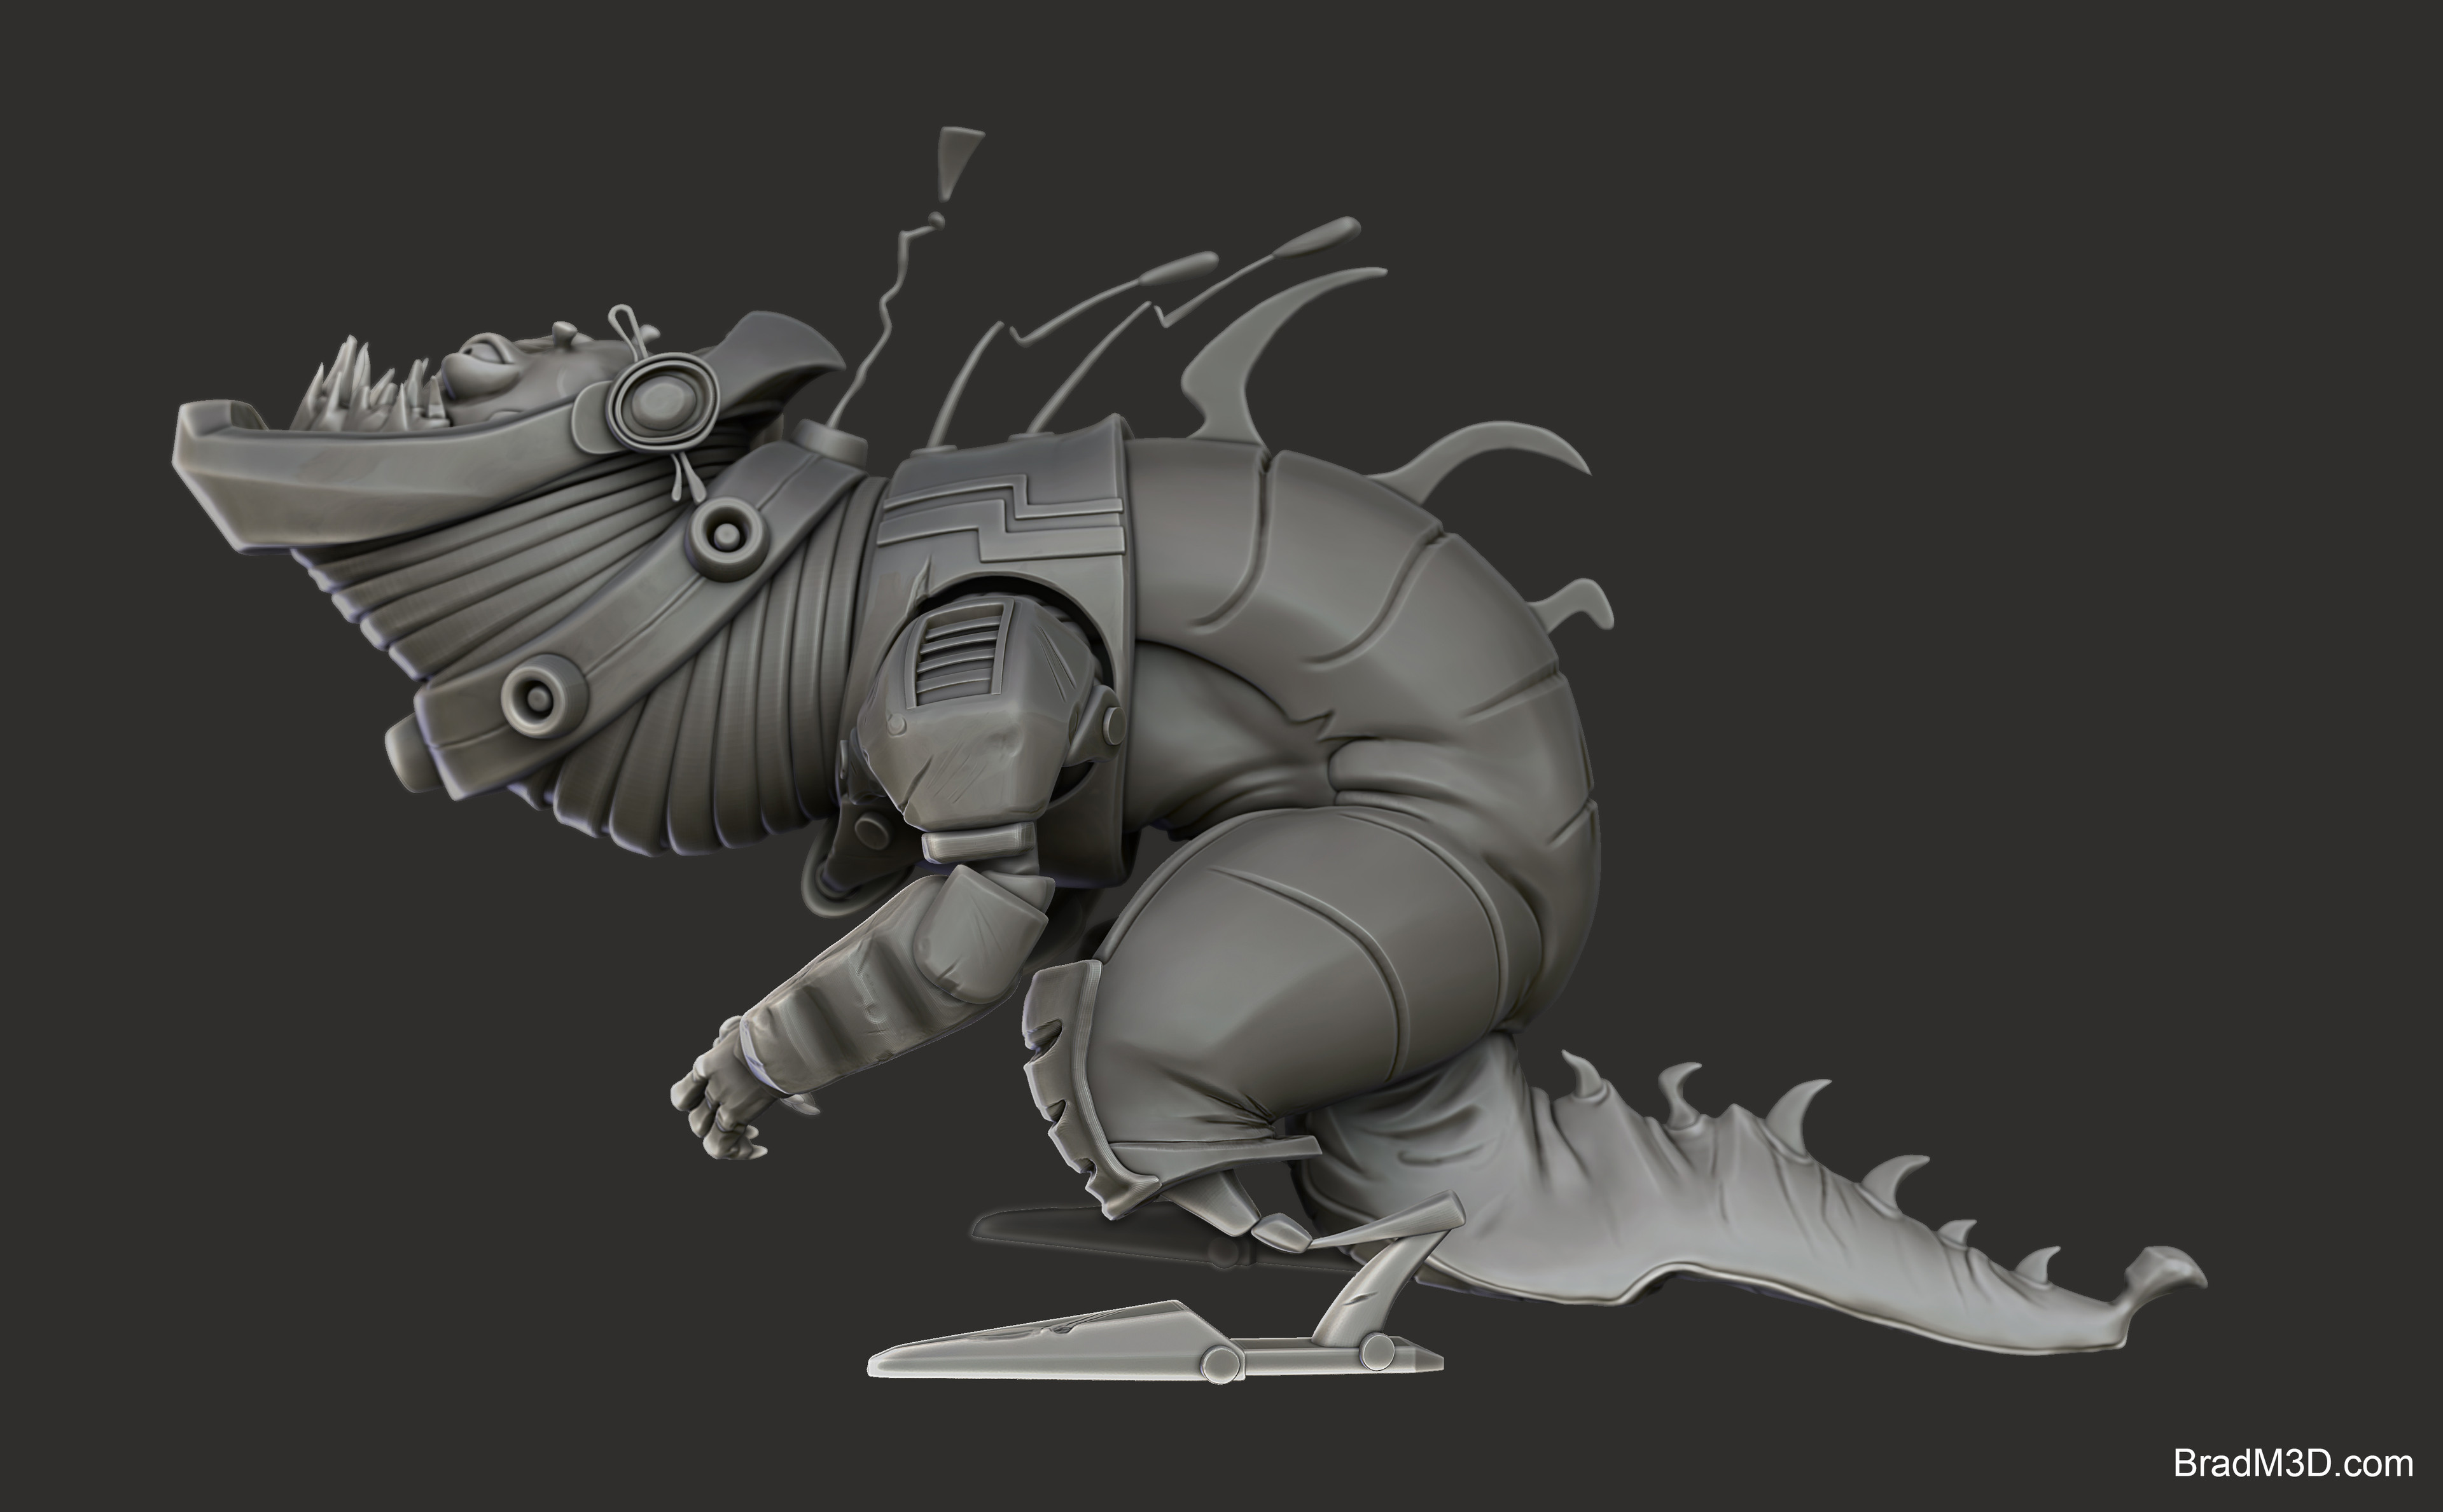 Zbrush: High Poly_02